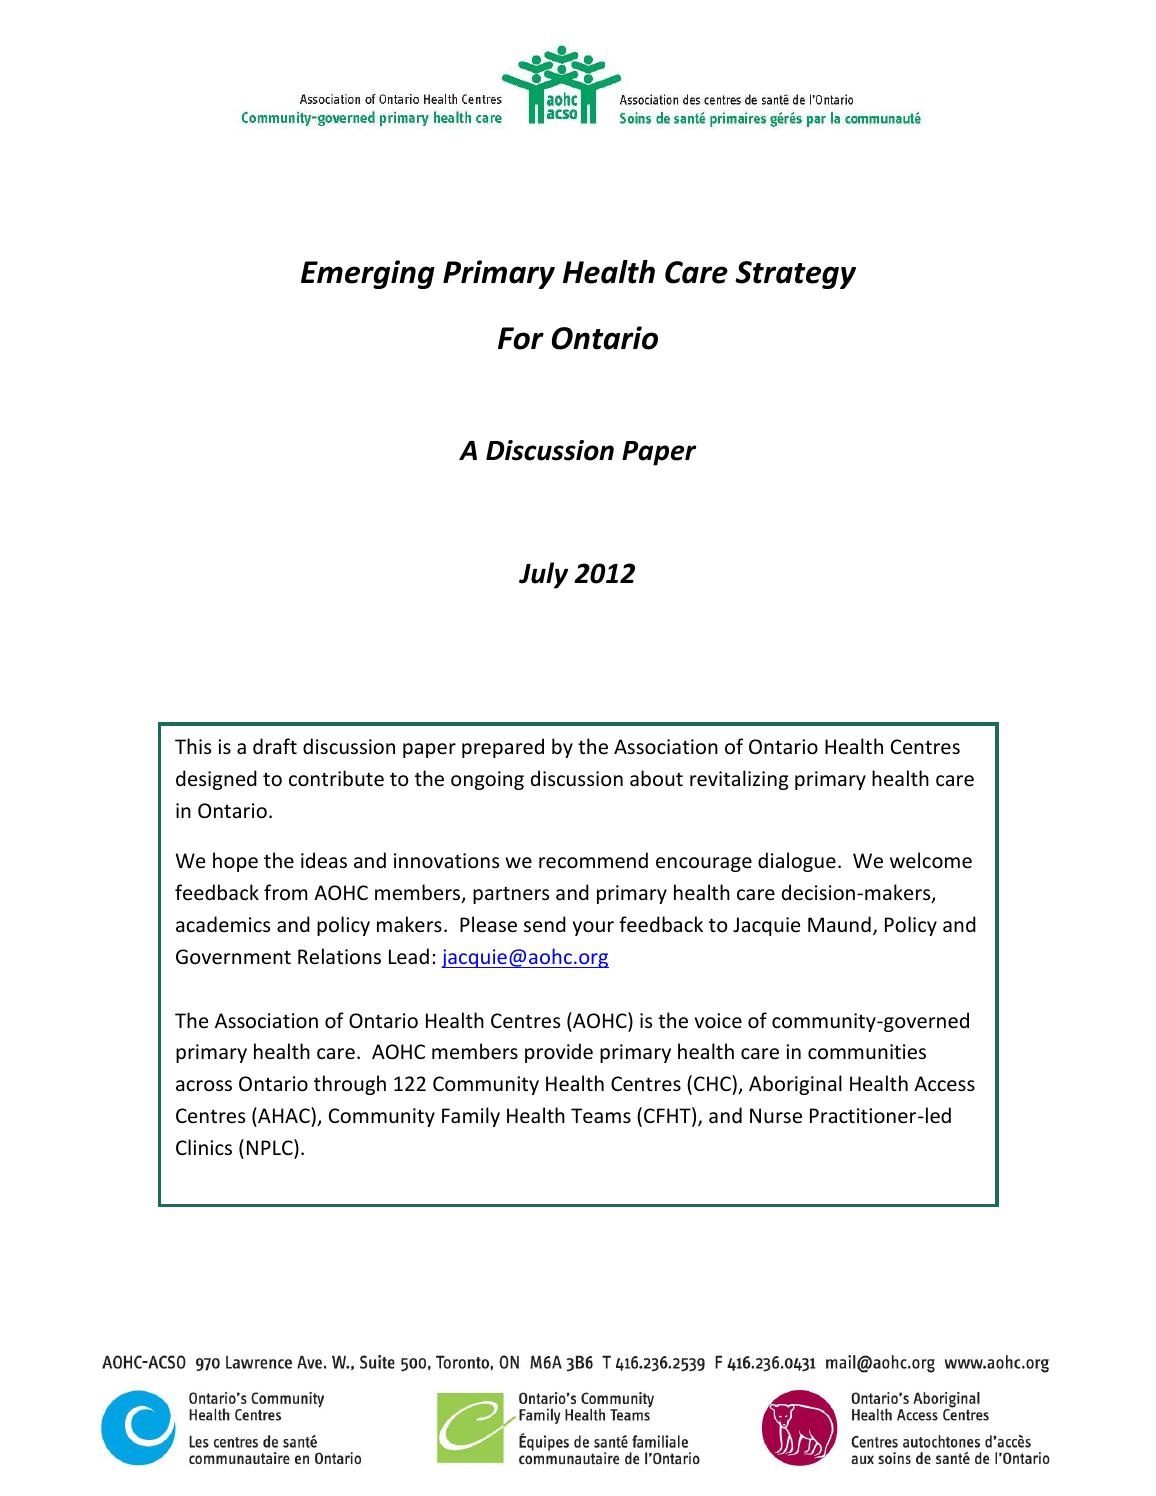 Final emerging primary health care strategy for ontario july